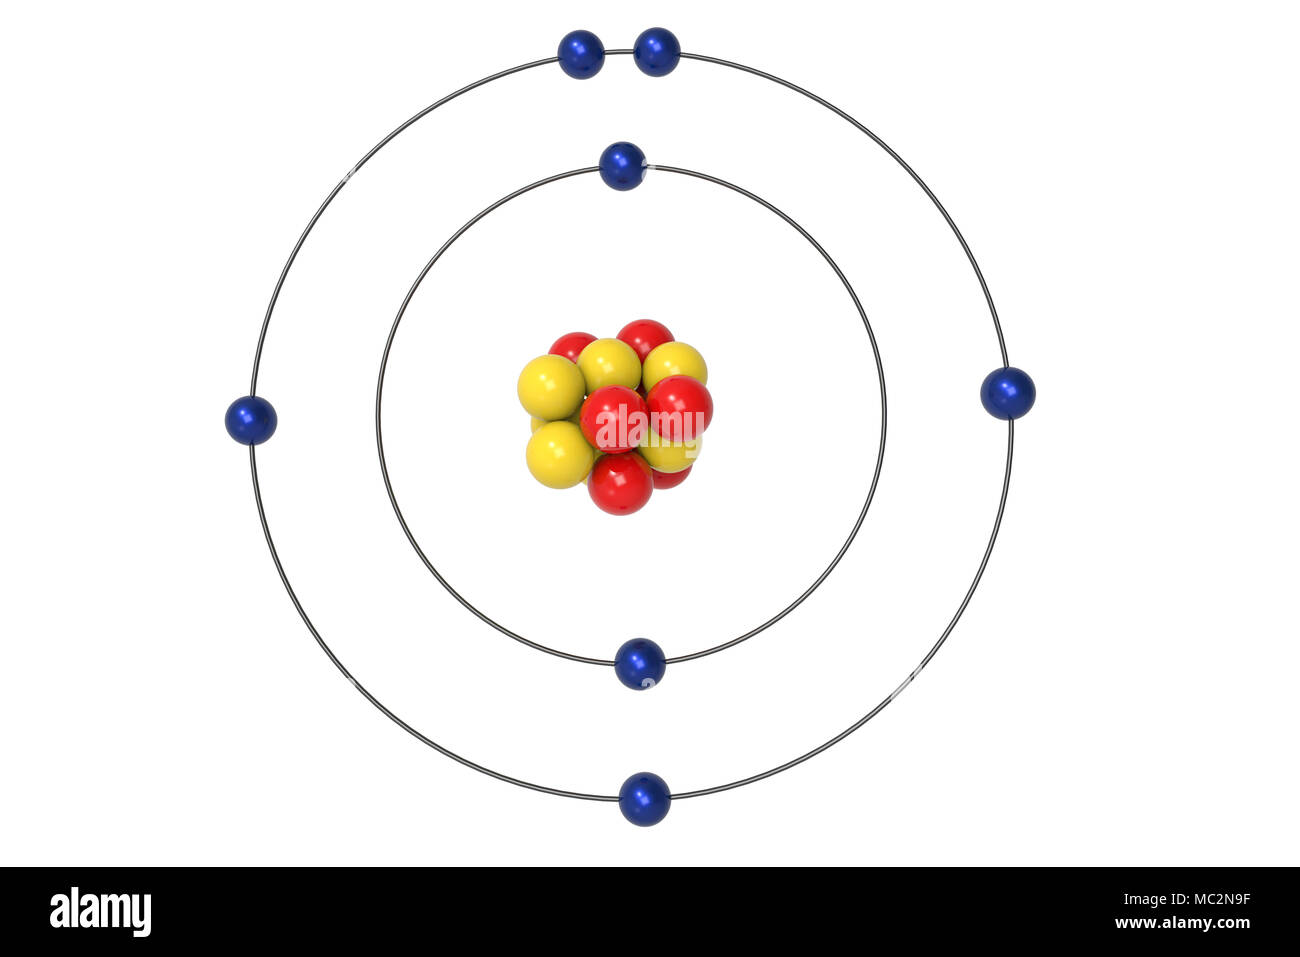 bohr model stock photos & bohr model stock images - alamy schematic diagram of the nitrogen cycle #9